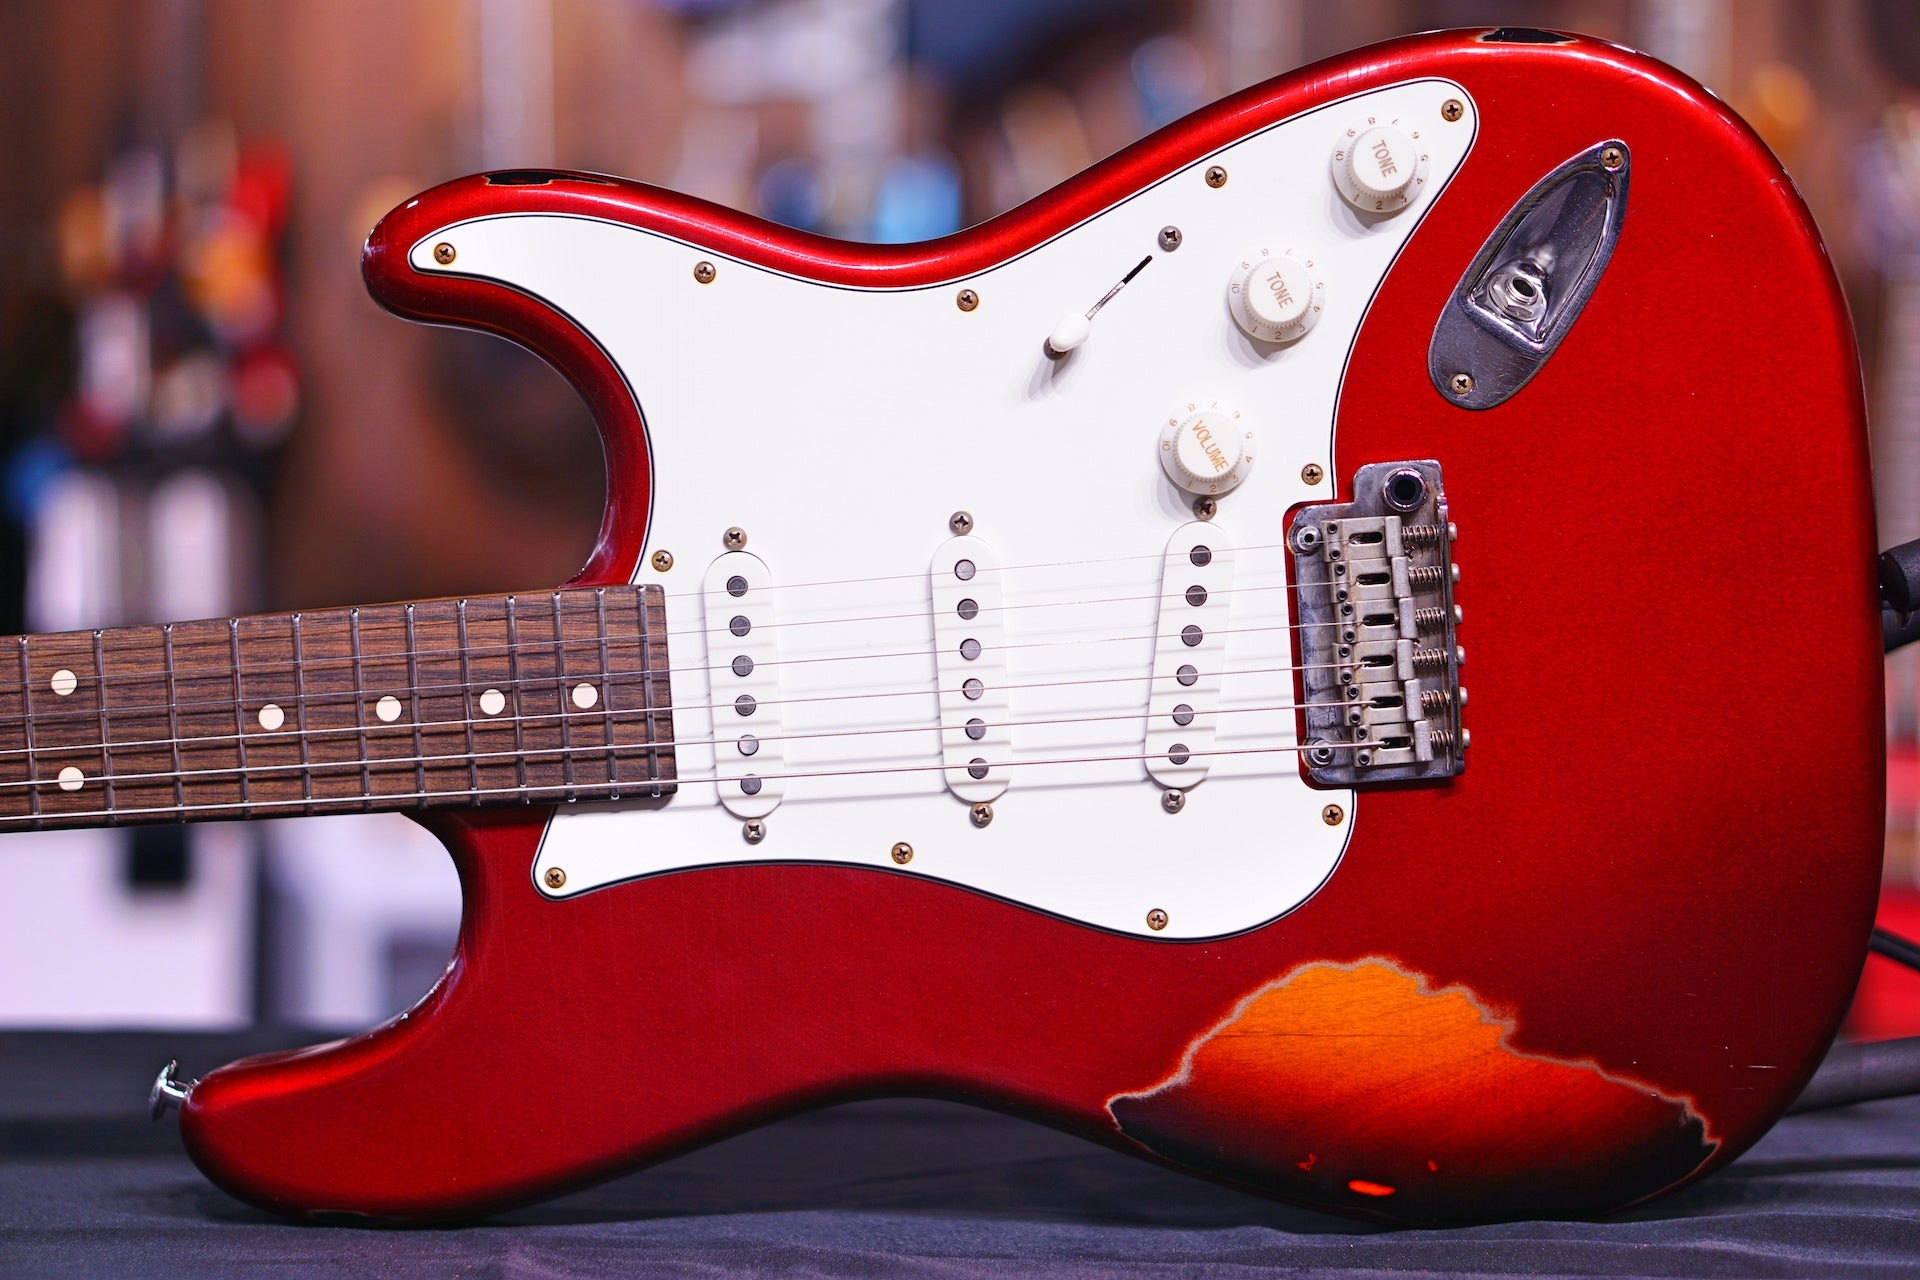 Suhr Classic Antique Finish Over Finish Candy Apple Red Js6J0Q SUHR - HIENDGUITAR.COM